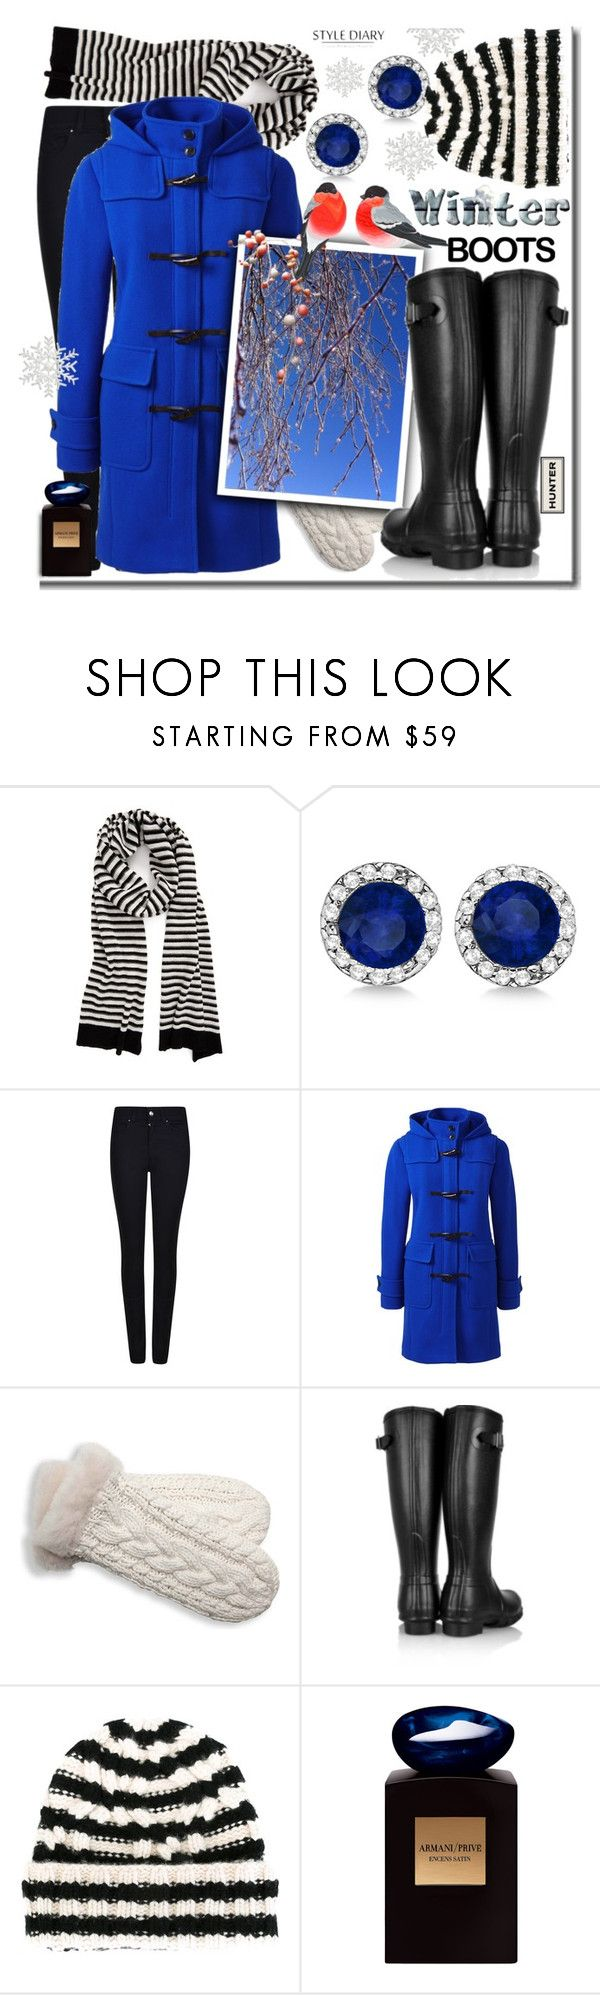 """""""Perfect winter boots: Hunter tall shearling-lined Wellington boots"""" by rinagern ❤ liked on Polyvore featuring Rebecca Minkoff, Allurez, Armani Jeans, Lands' End, UGG Australia, Hunter, Warm-Me and Giorgio Armani"""